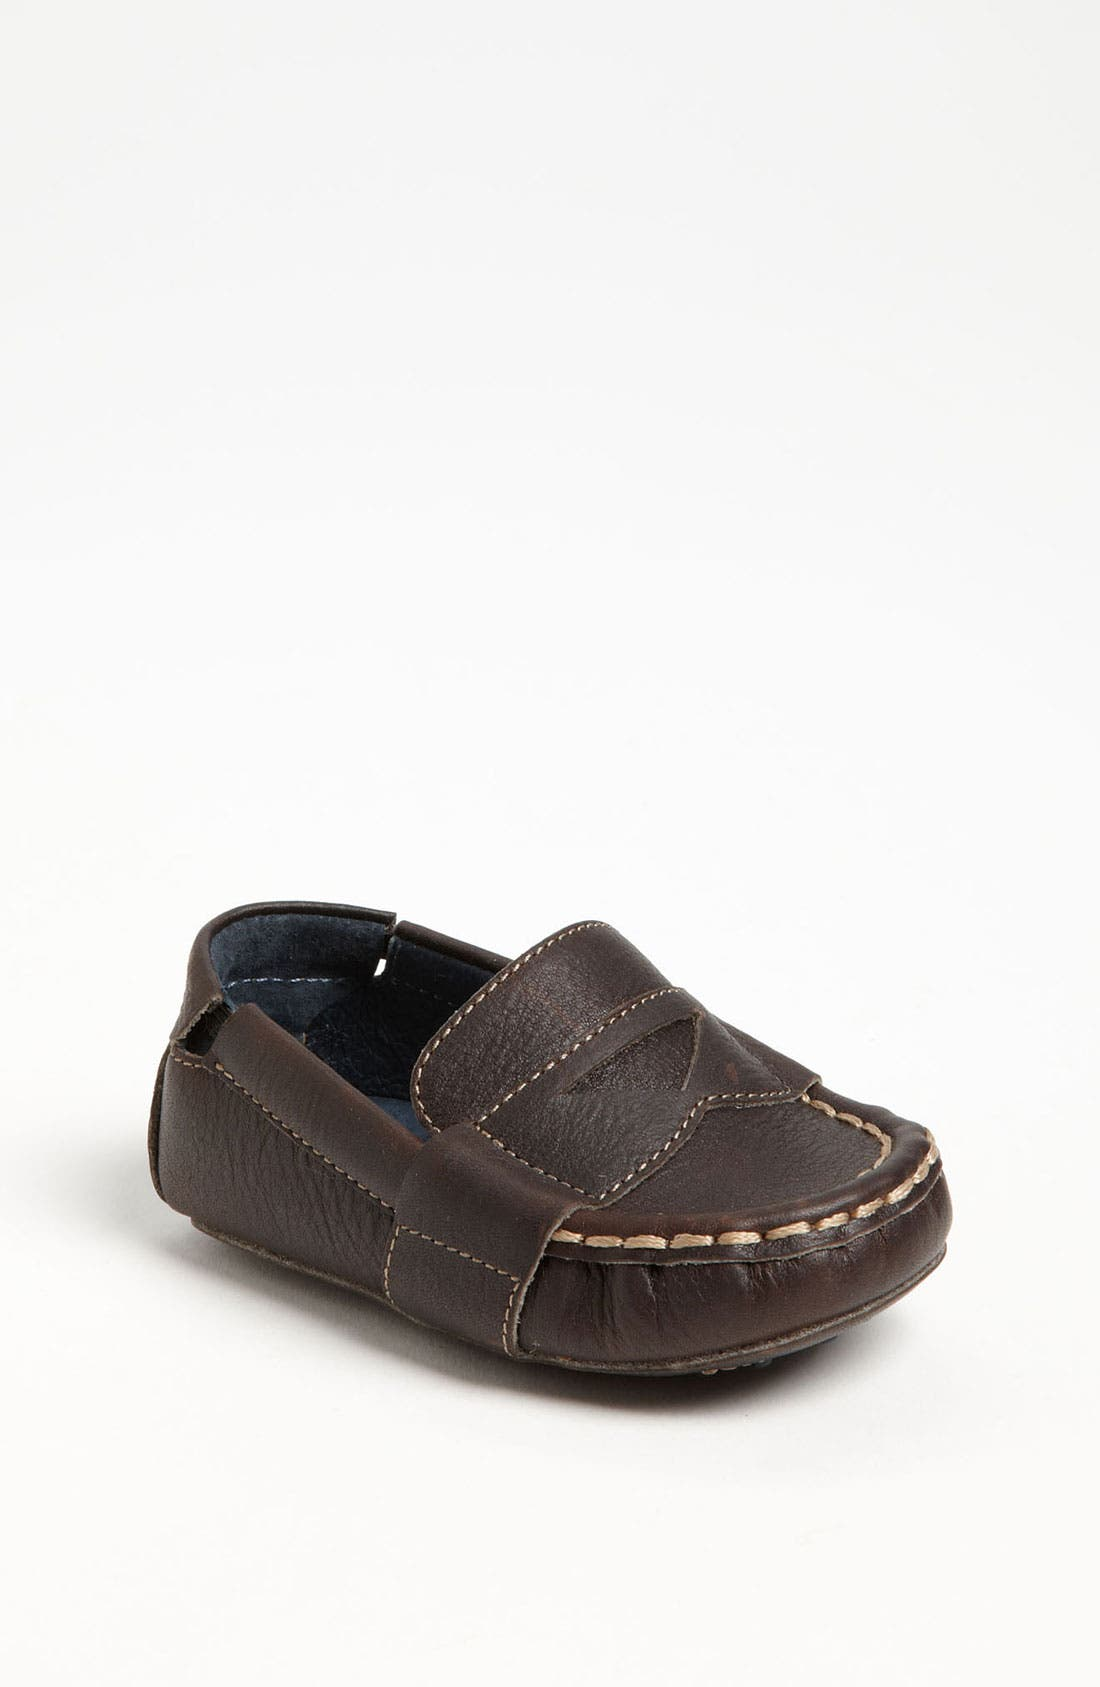 Alternate Image 1 Selected - Cole Haan 'Mini Penny Loafer' Leather Slip-On (Baby)